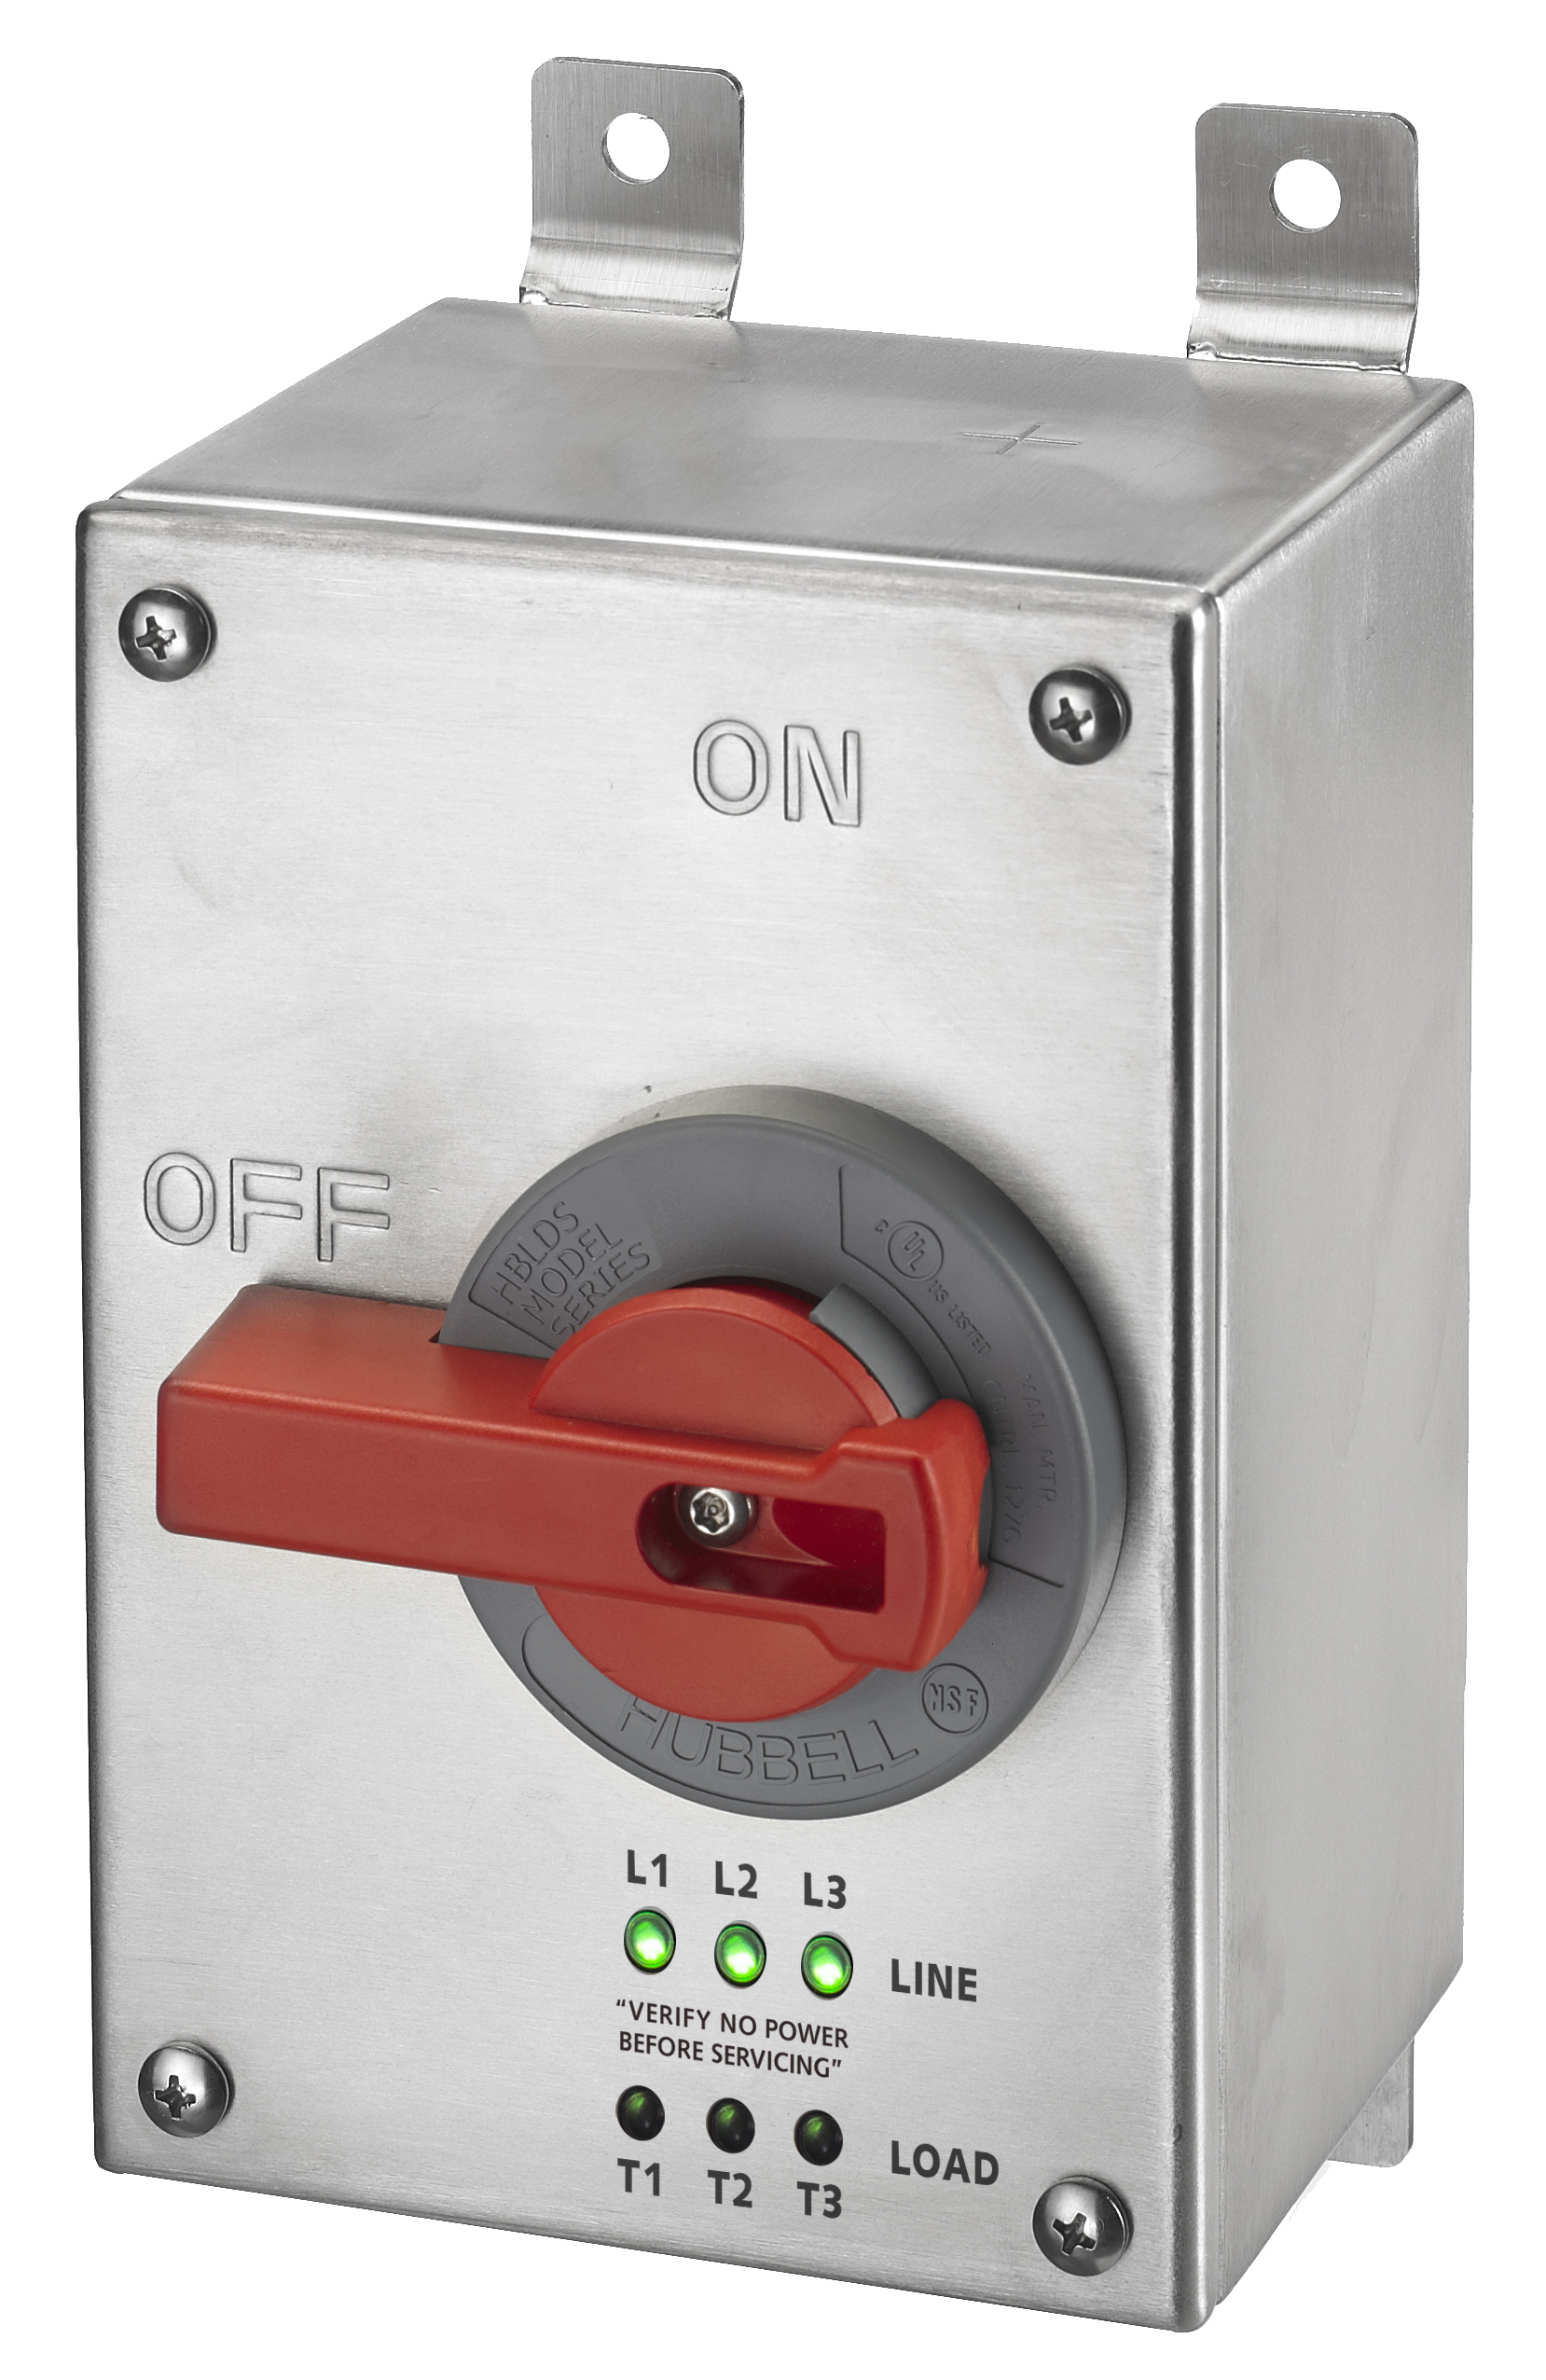 HUBBELL HBLDS3SSPJ DISCONNECT, UN-F, 30A, 4X, STAINLESS STEEL, LED, JOG SWITCH